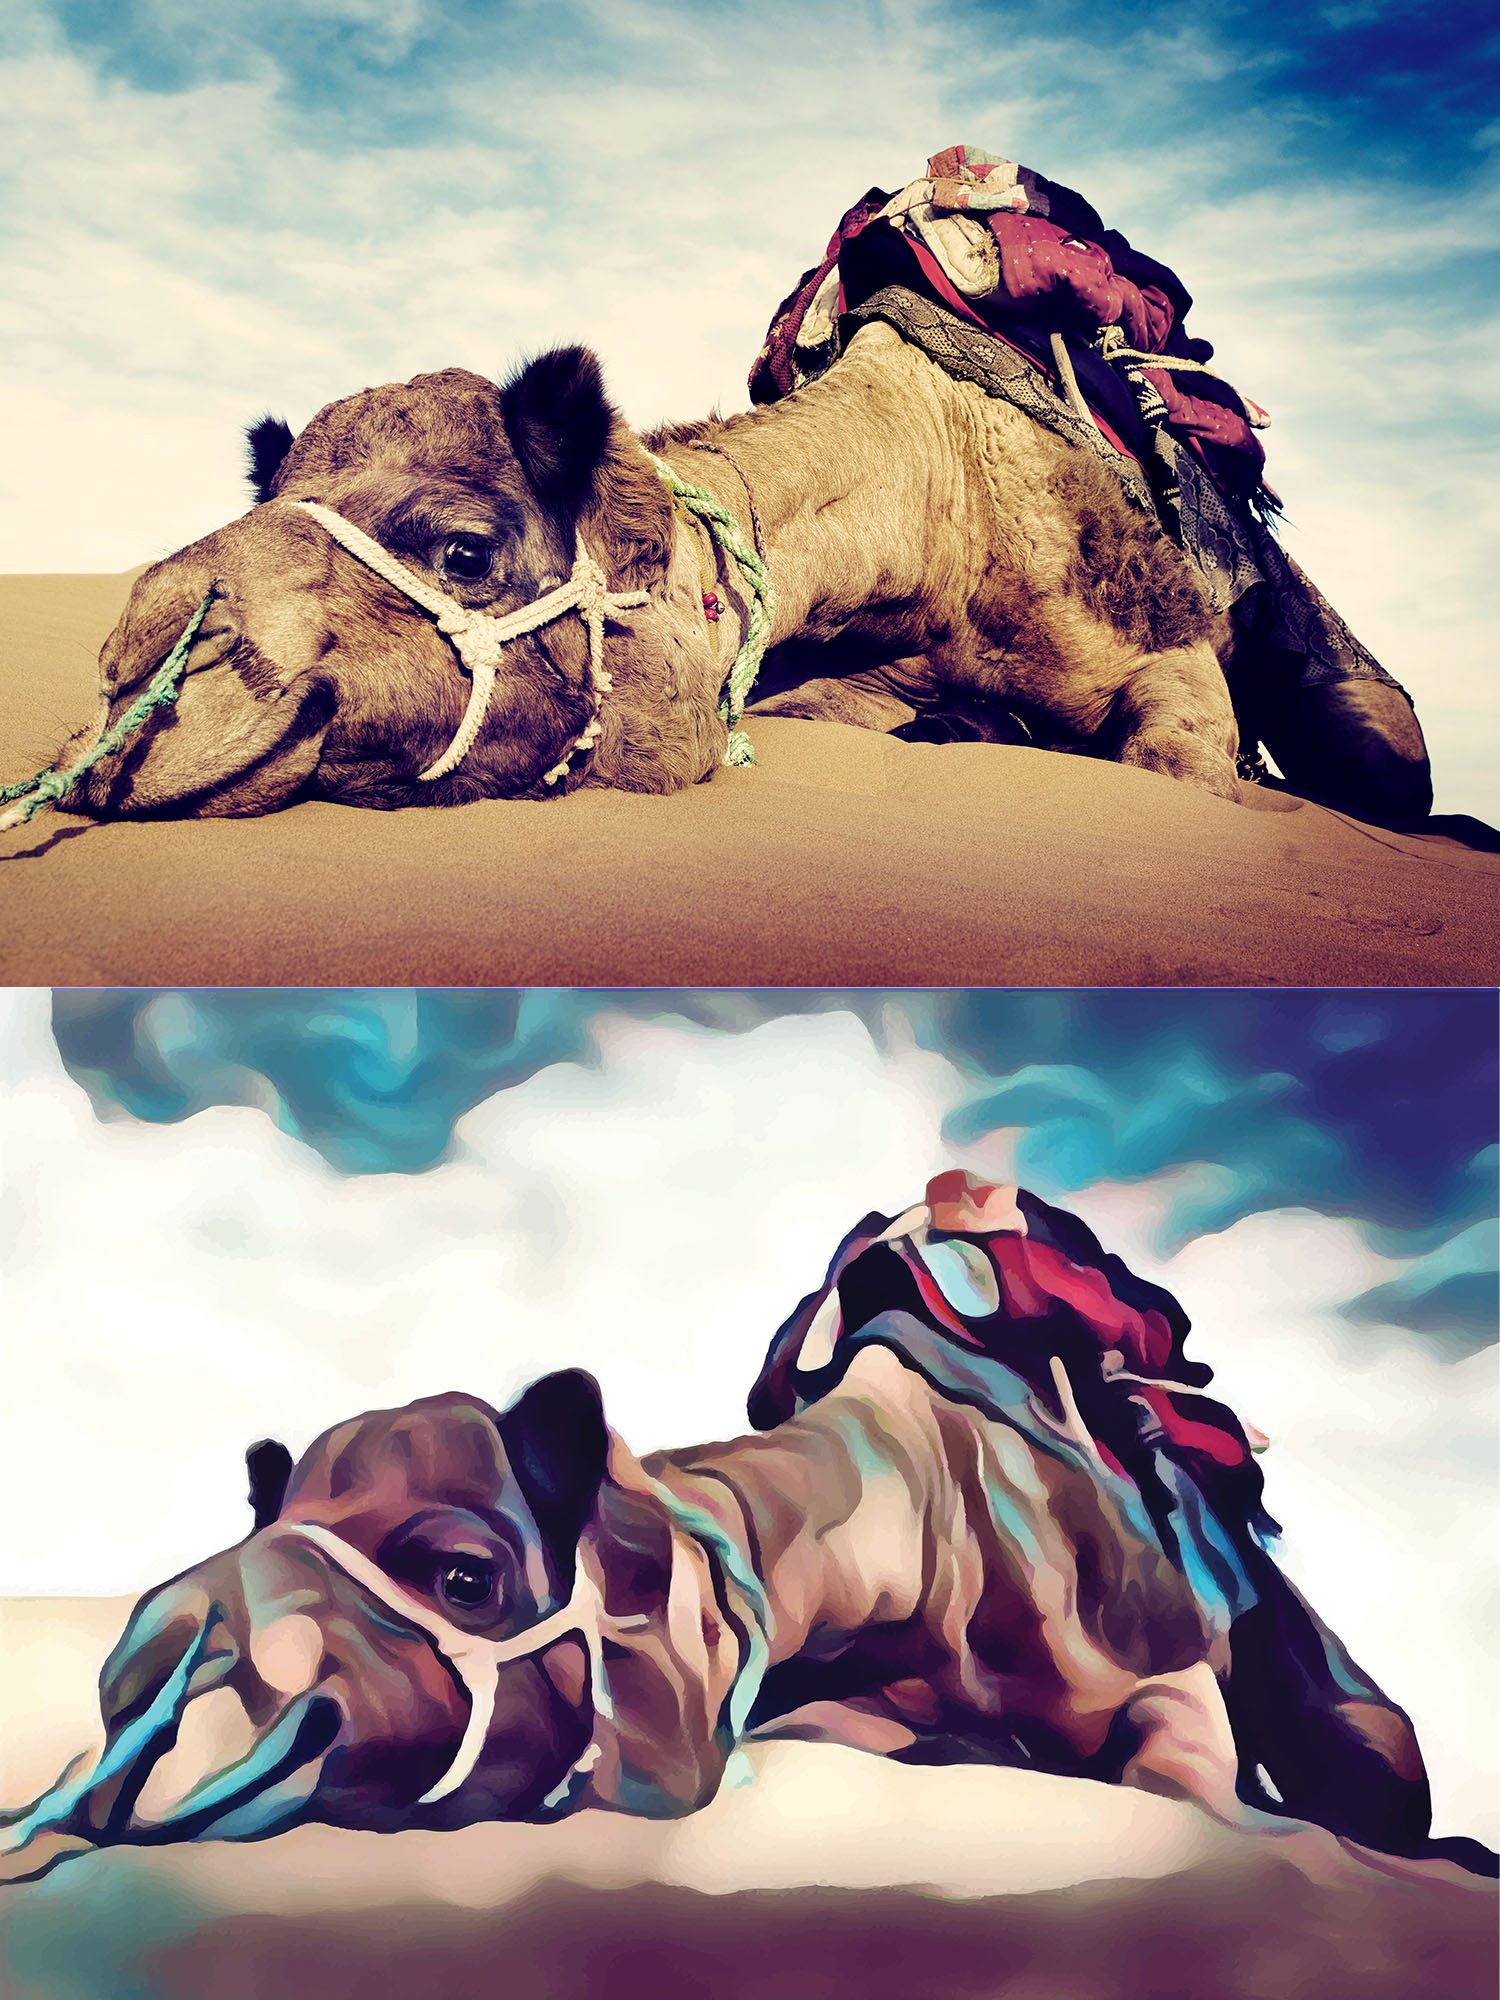 Before and after stylized image of a camel prostrate on the desert floor.